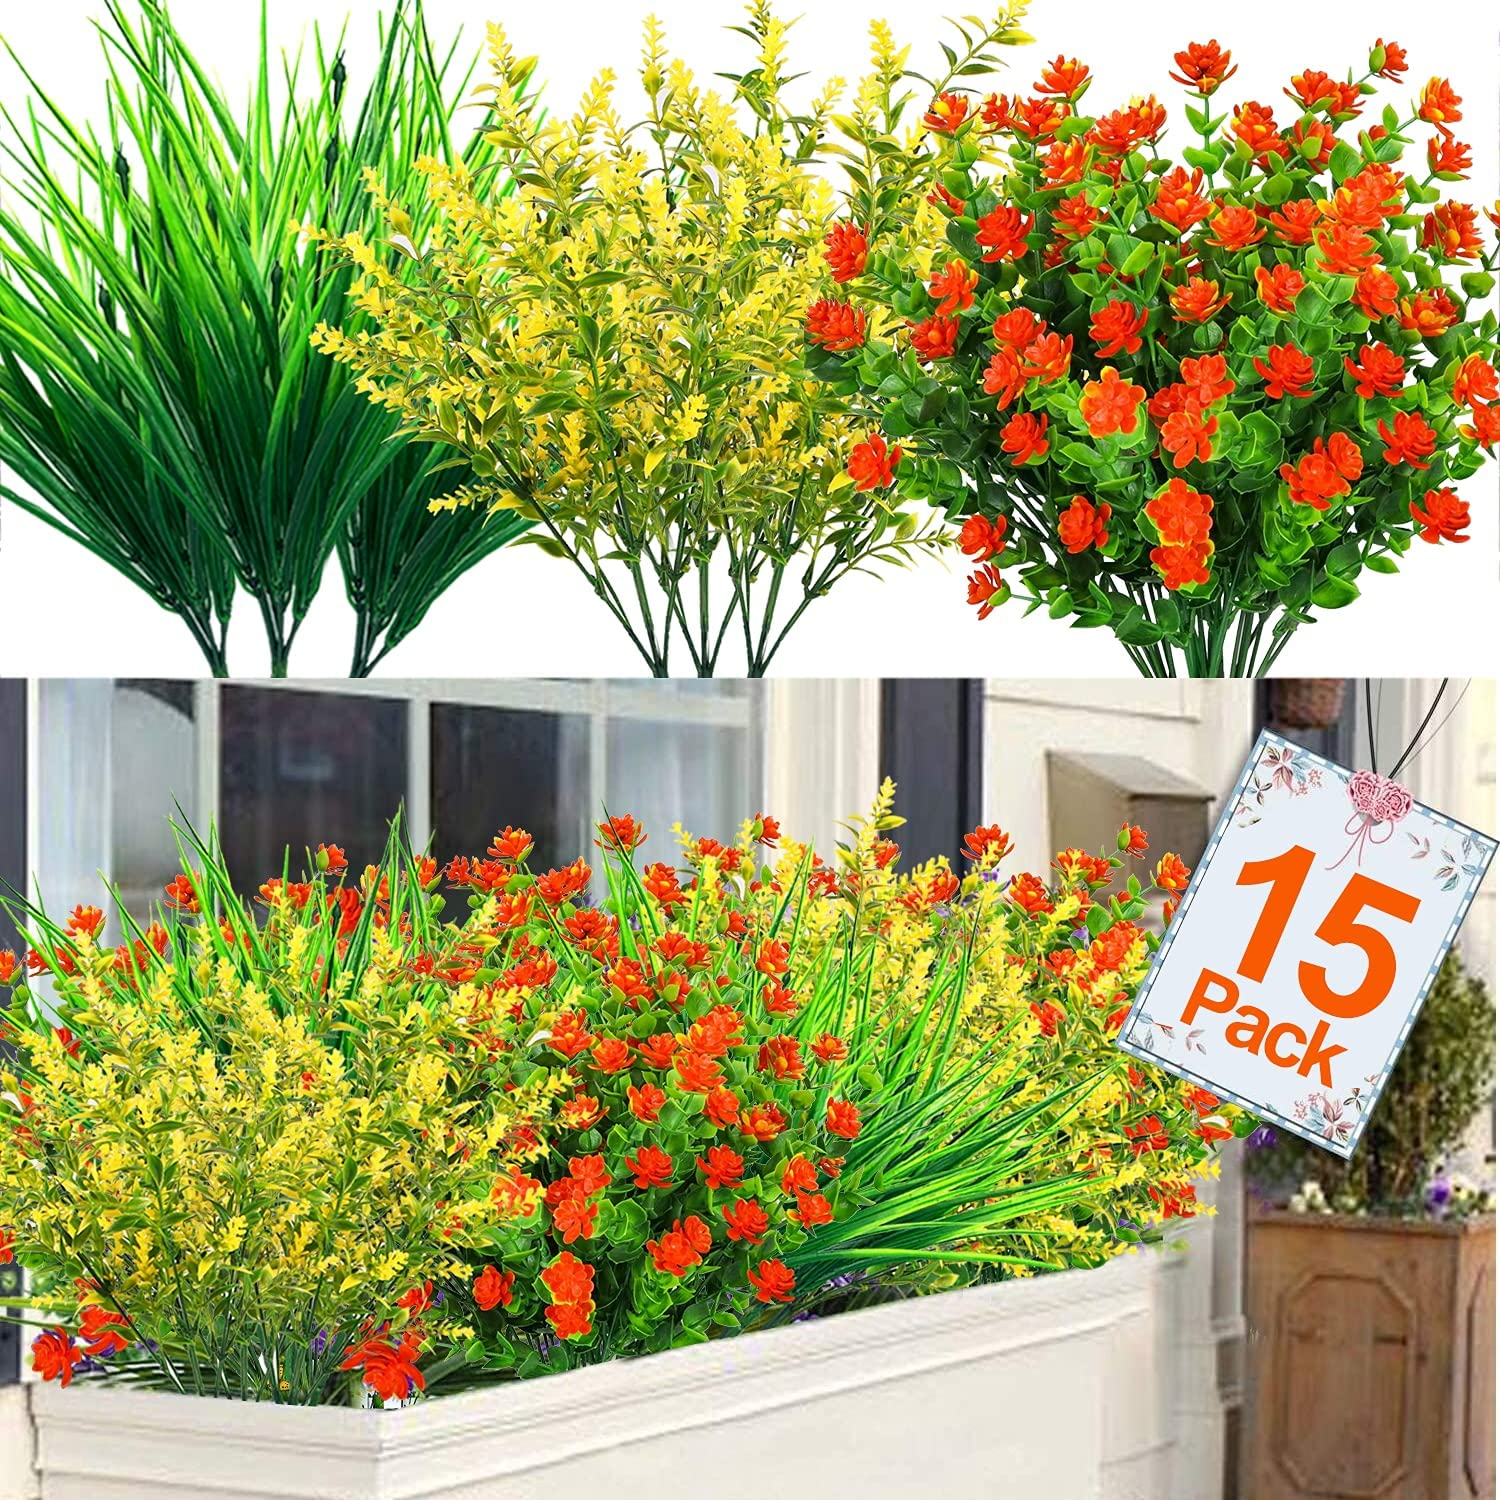 TURNMEON 15 Pcs Artificial Flowers Outdoor UV Resistant Fake Plants, Faux Plastic Corn-Flower Greenery Shrubs Indoor Outdoor Hanging Planter Home Wedding Porch Window Garden Decor(Yellow, Red, Green)